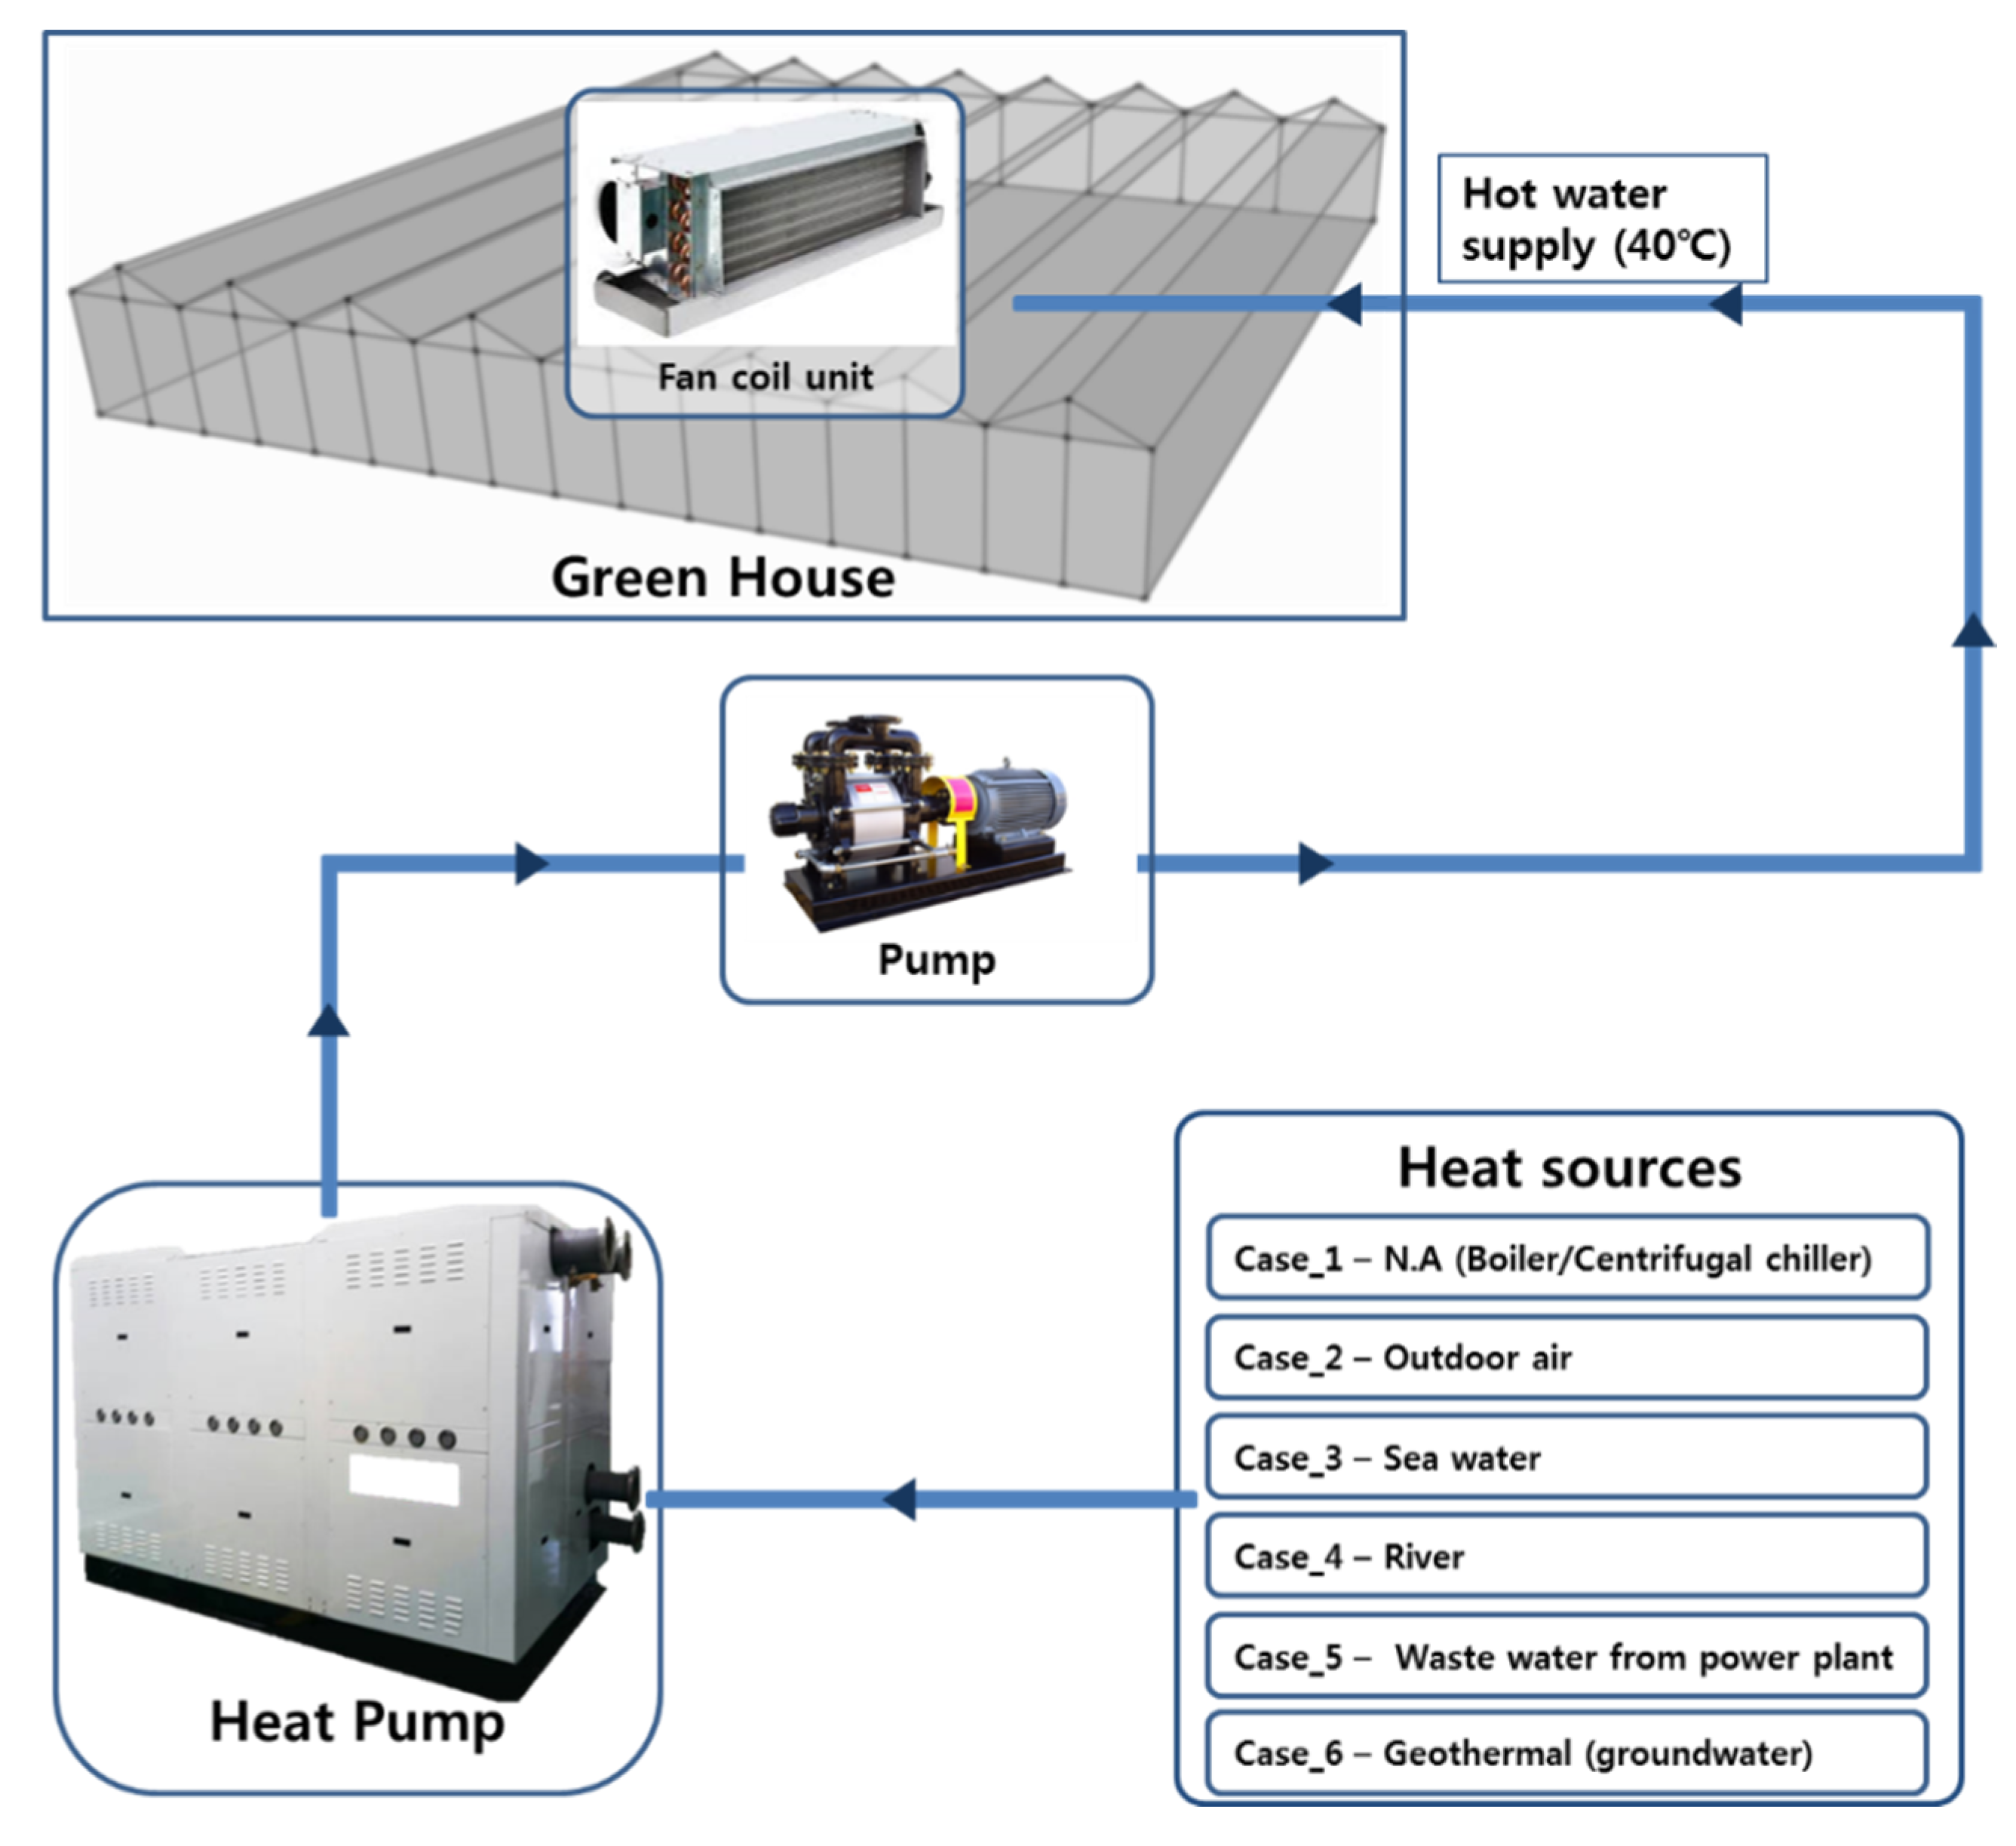 Water Heaters additionally Central Air Conditioner Thermostat Wiring Diagram Wiring Diagrams also Home Air Conditioning System Diagram also Thermostat Wiring Colors Code also Thermostat Wiring Diagrams. on geothermal heat pump wiring diagram